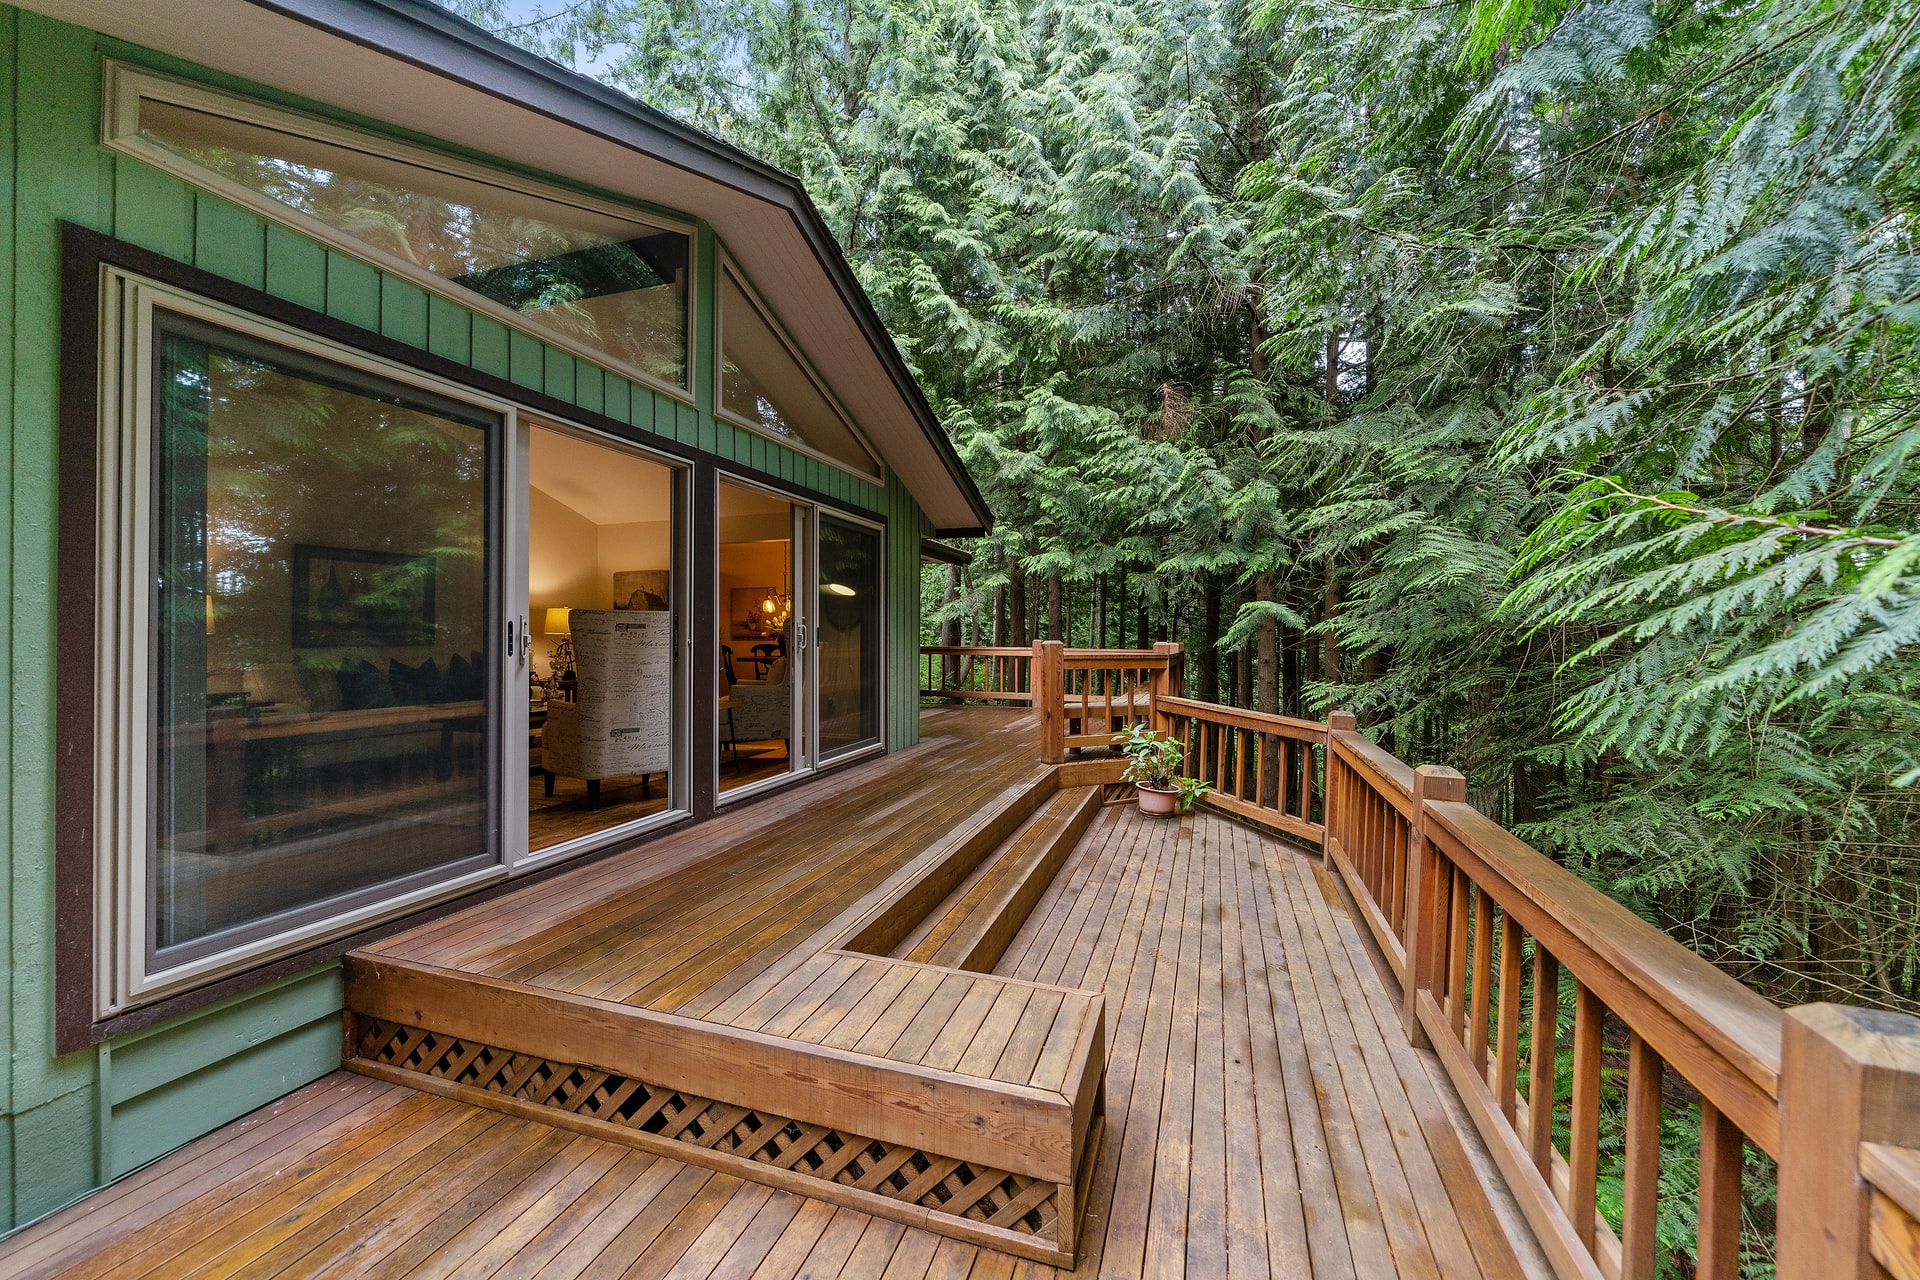 Outdoor deck by green house and pine trees